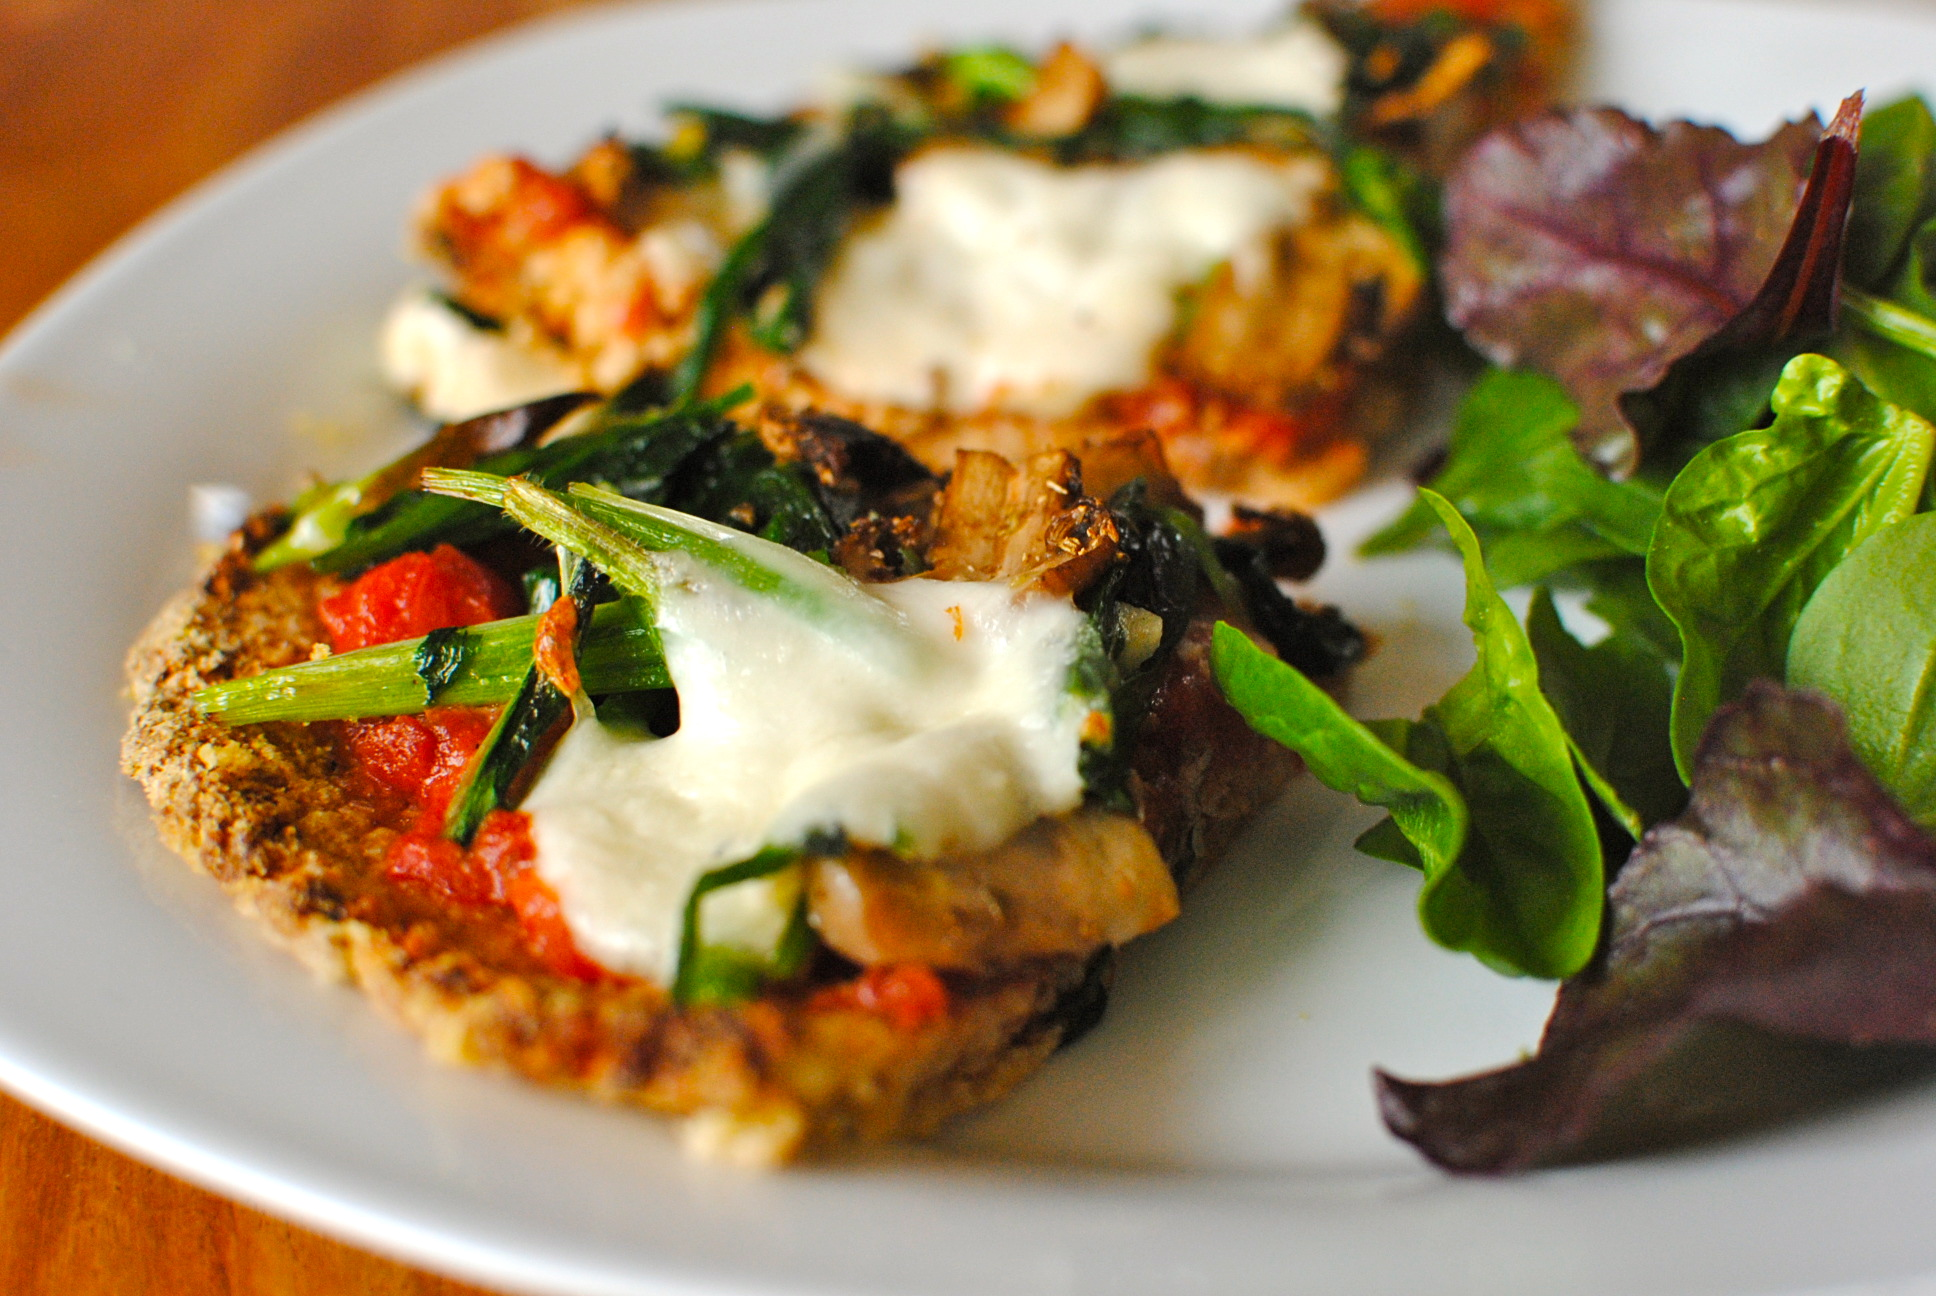 Cauliflower And Almond Pizza Crust With Fresh Sauce And